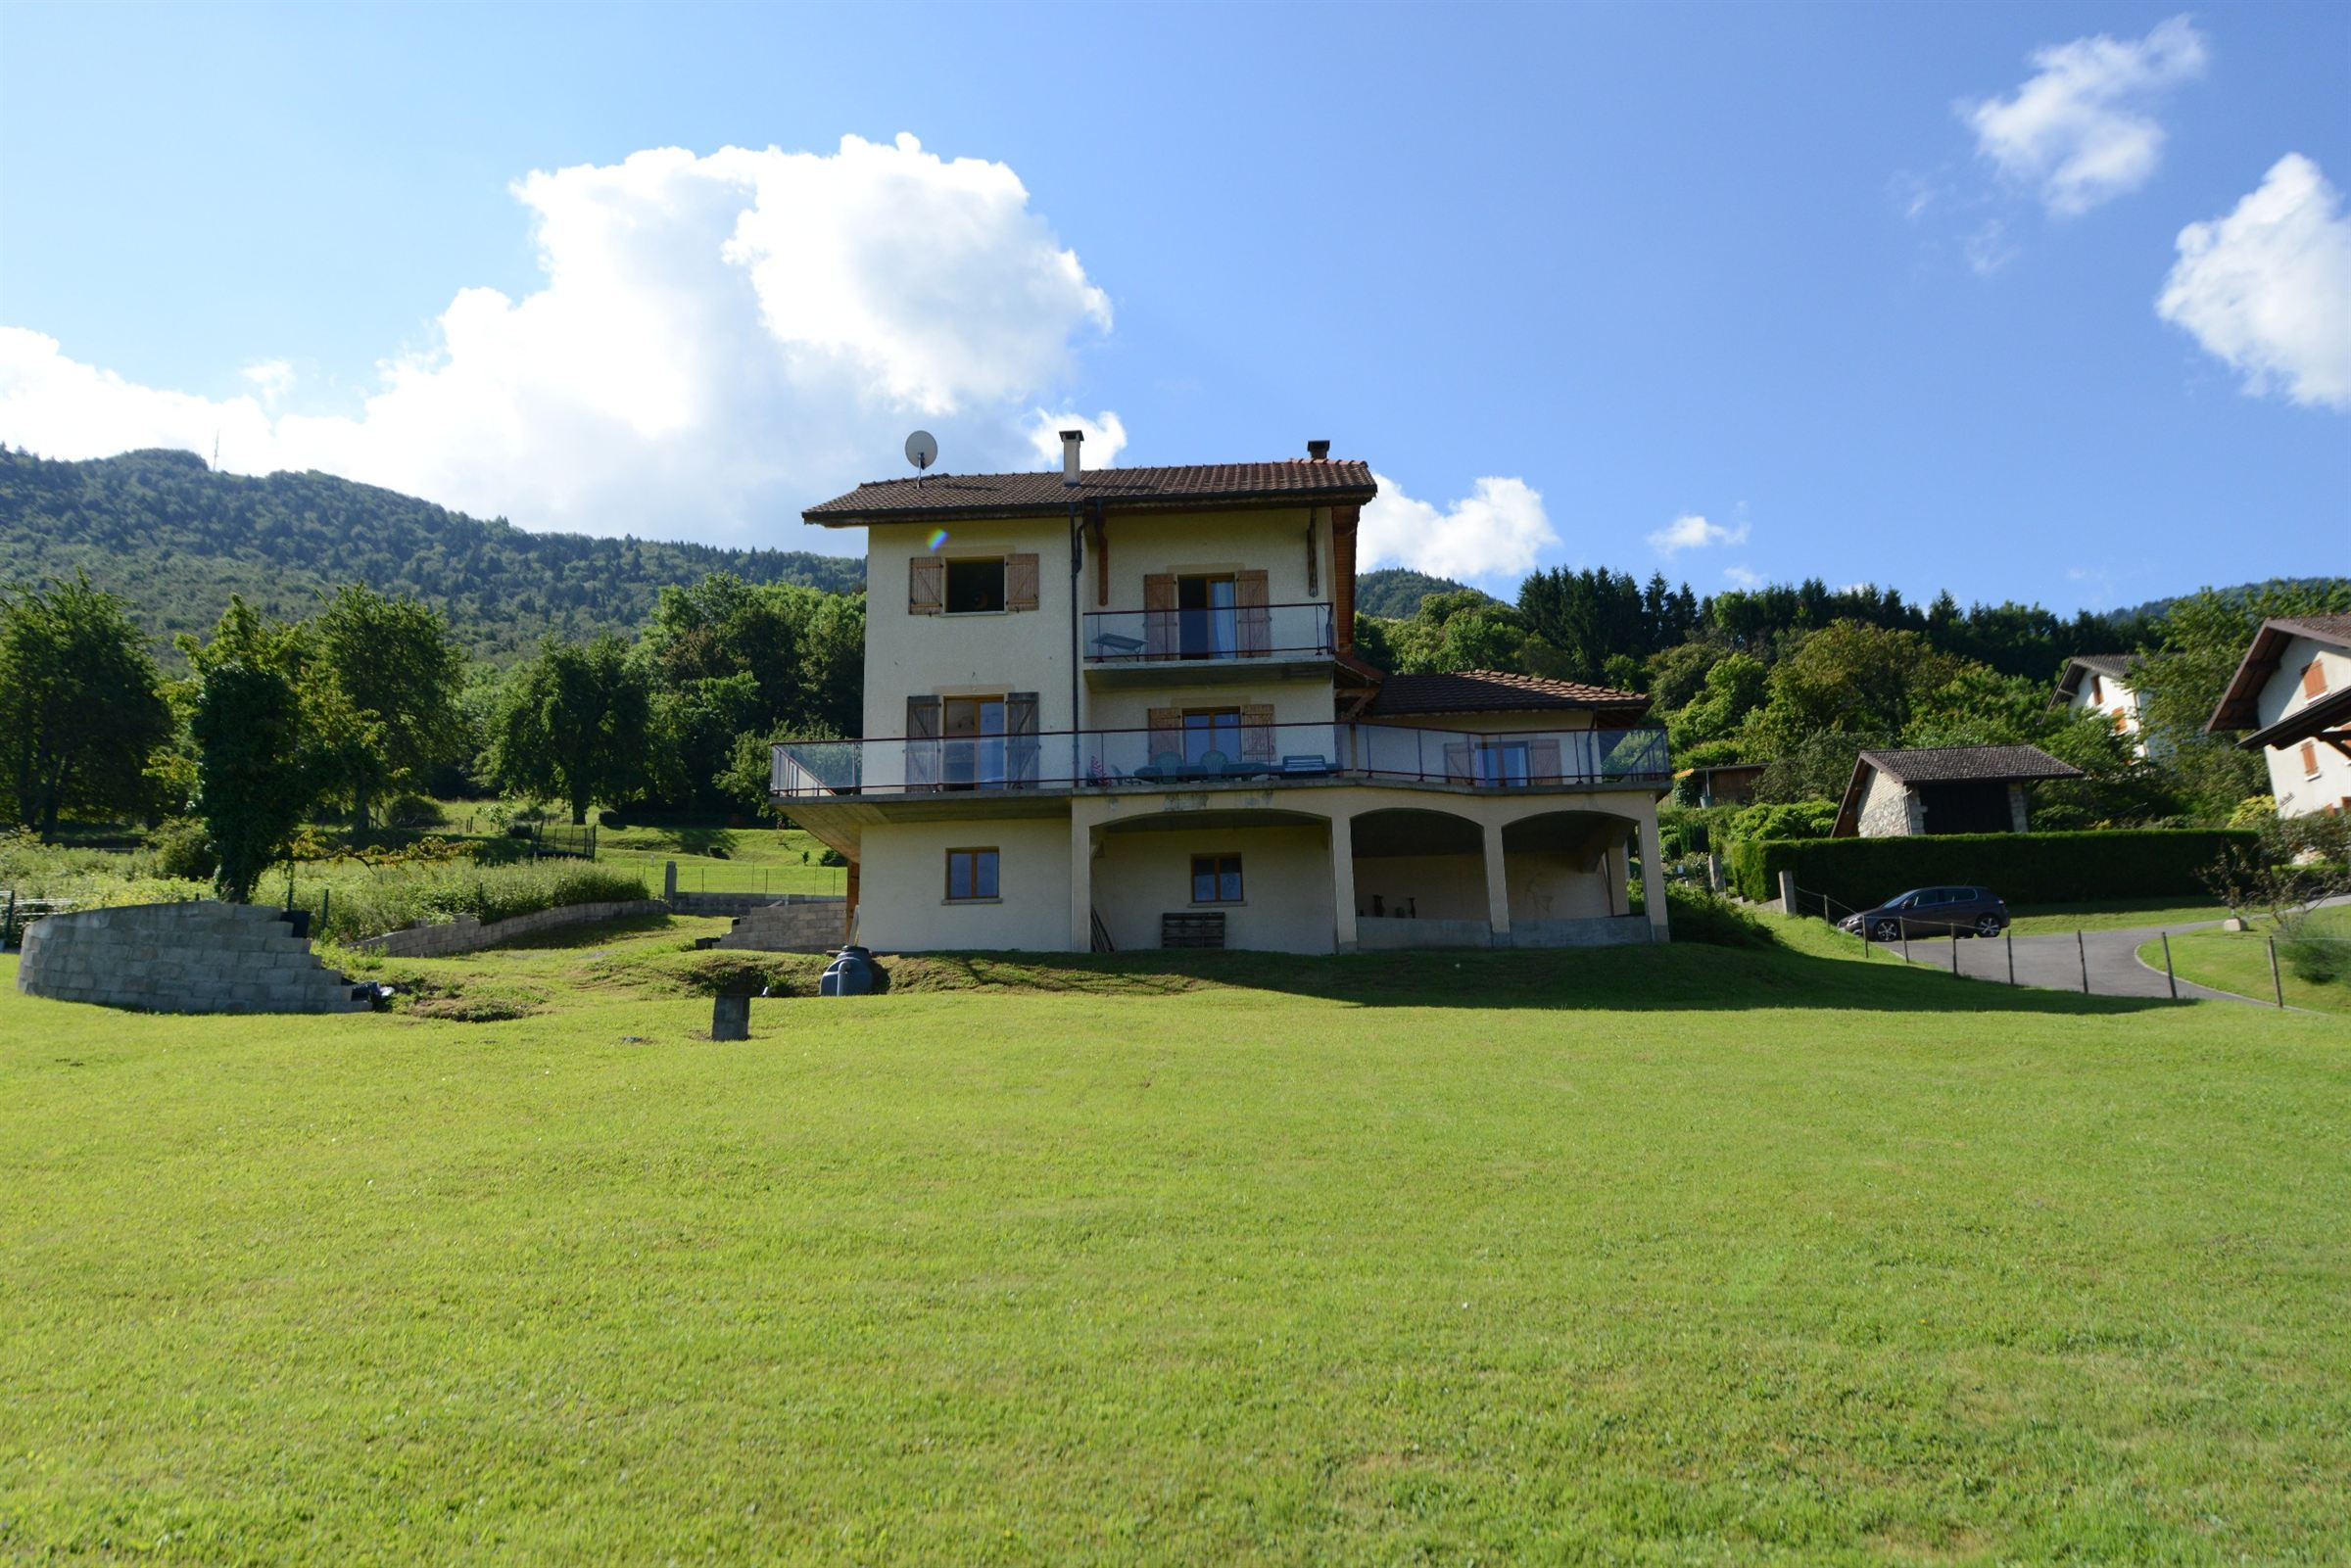 Single Family Home for Sale at LUGRIN NEAR EVIAN HOUSE WITH LAKE VIEW Lugrin, Rhone-Alpes, 74500 France